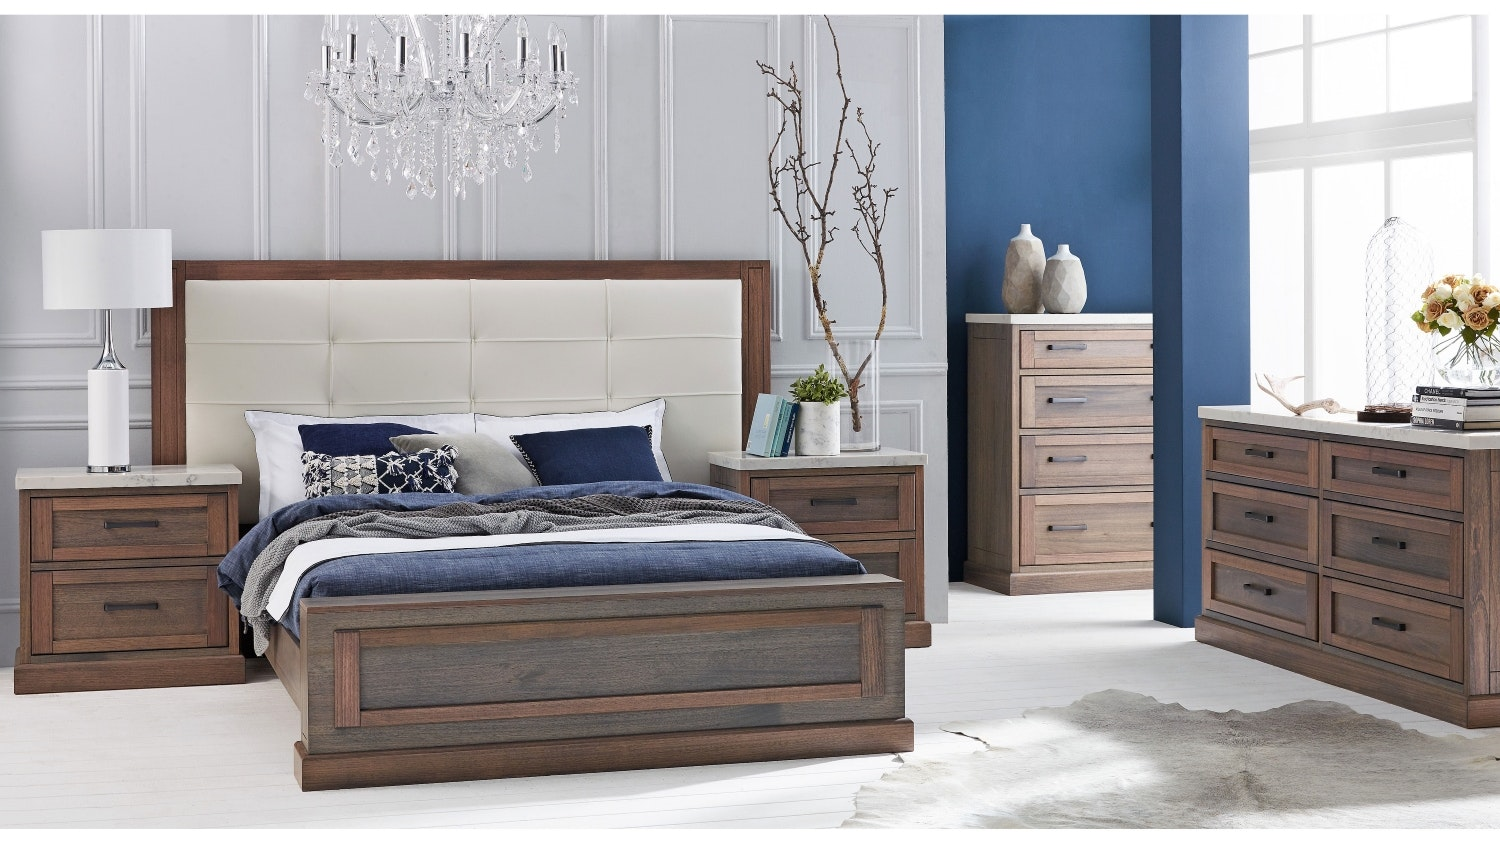 Round Table Bedroom Furniture: Hamptons Bed Frame With Leather Bedhead